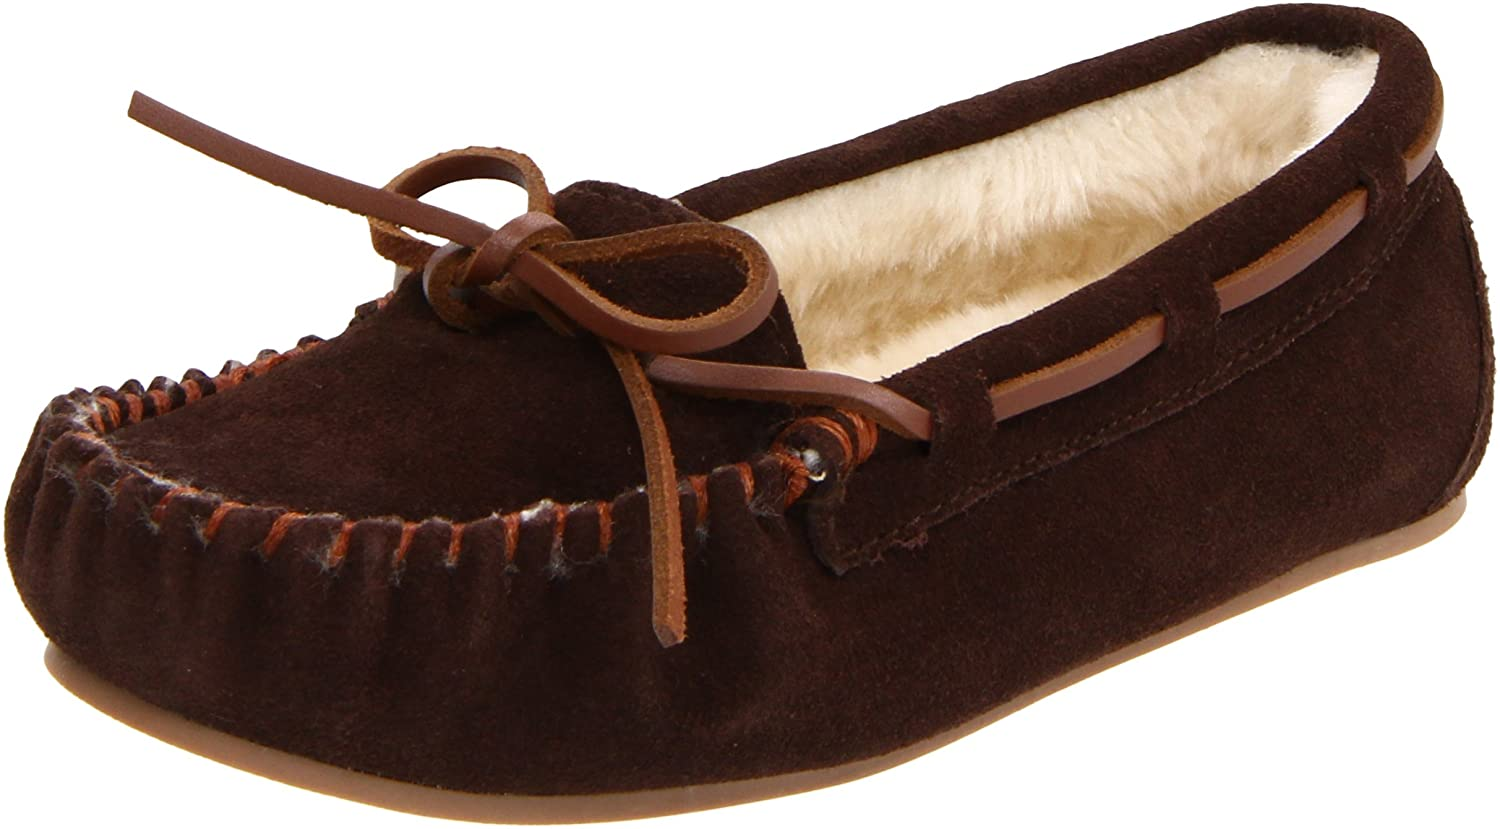 Tamarac by Slippers International Women's Low Molly Faux Slipper Blitz B004XWGIUC 12 W US|Chocolate